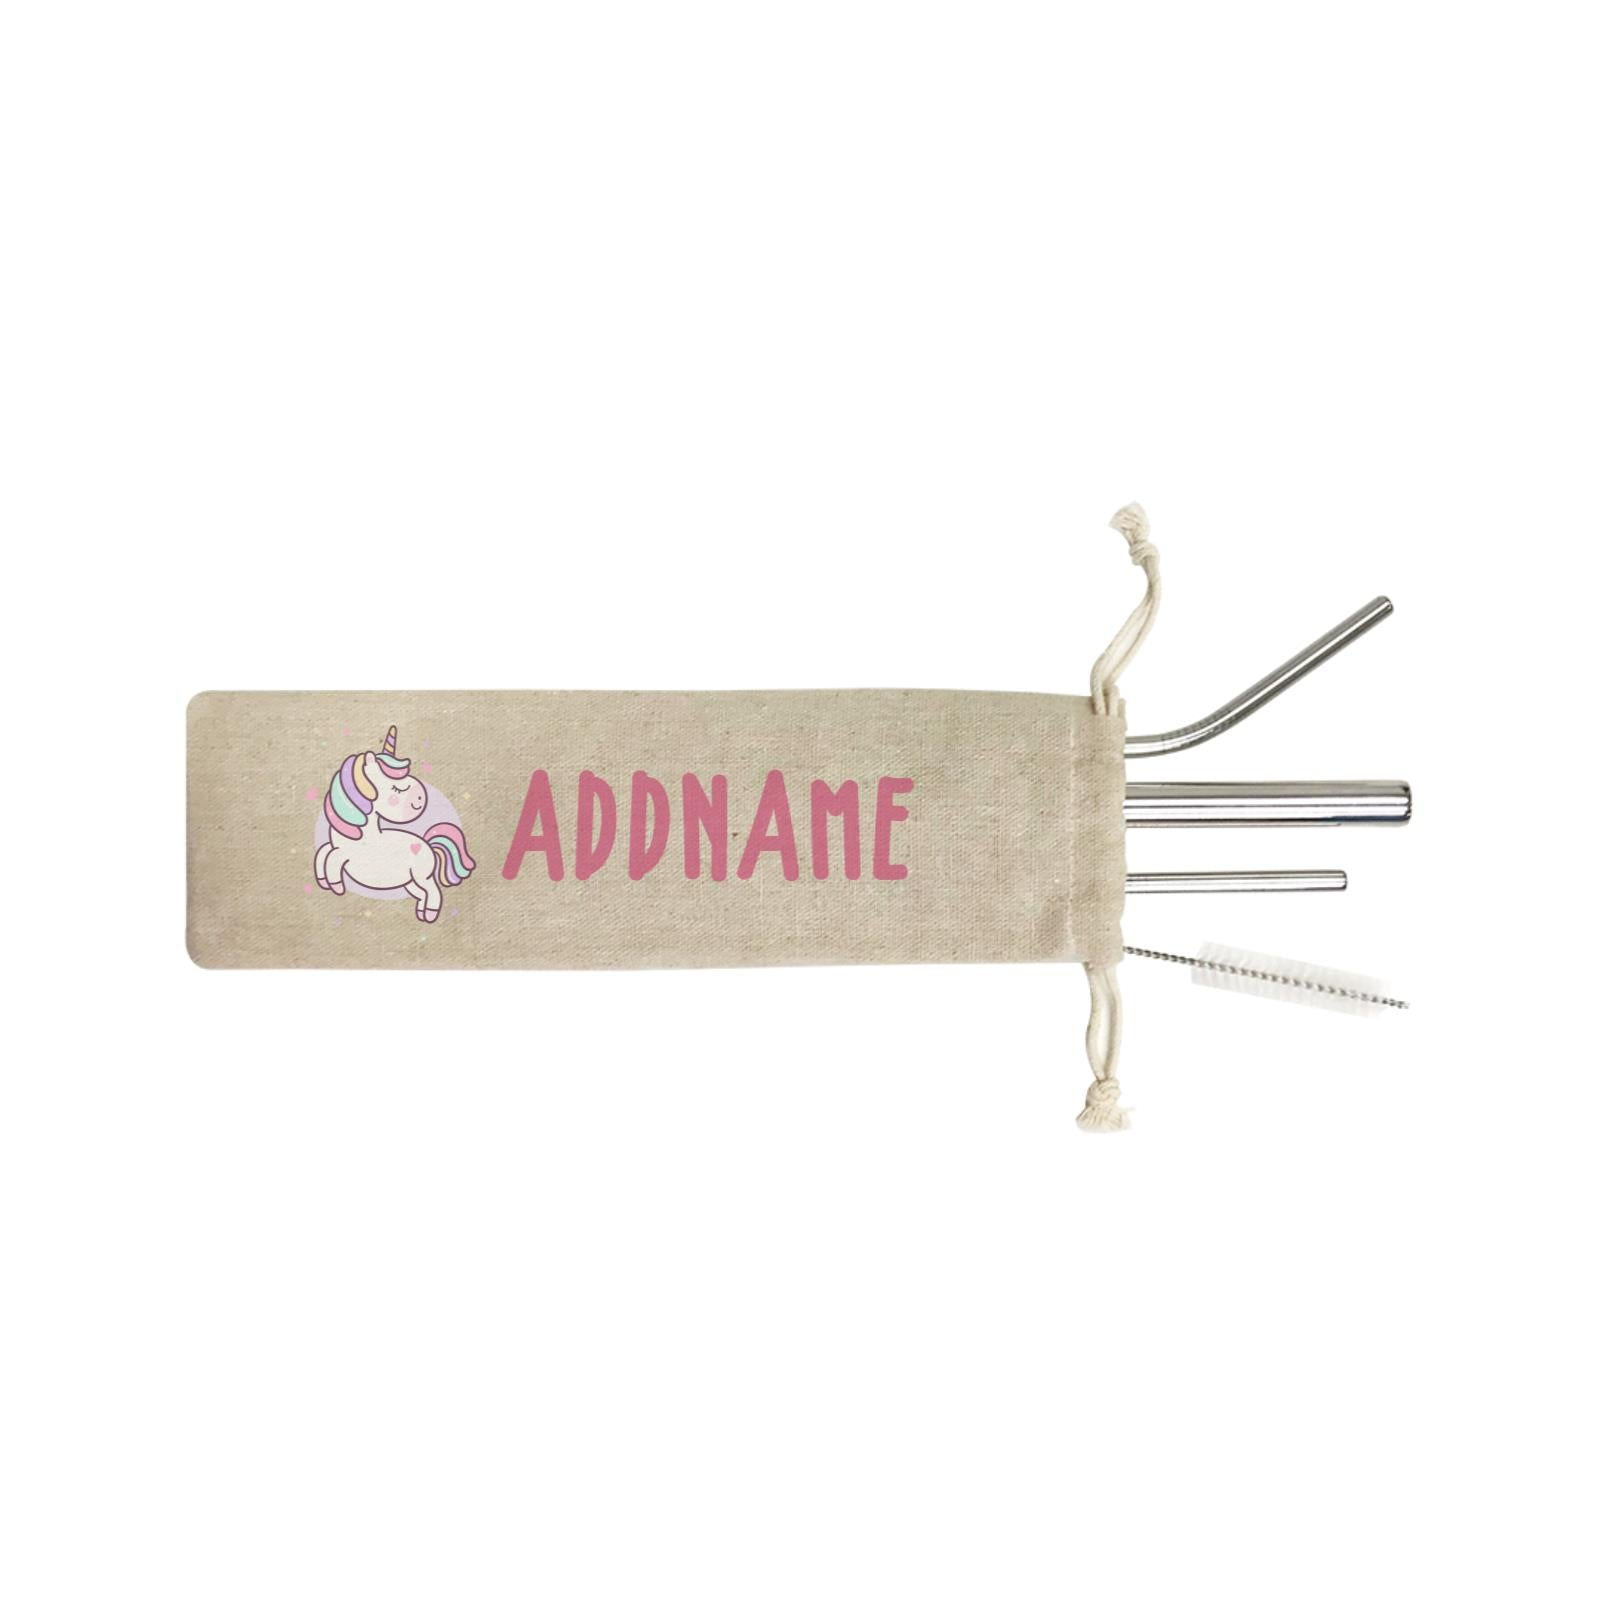 Unicorn And Princess Series Cute Pastel Unicorn Addname SB 4-In-1 Stainless Steel Straw Set in Satchel